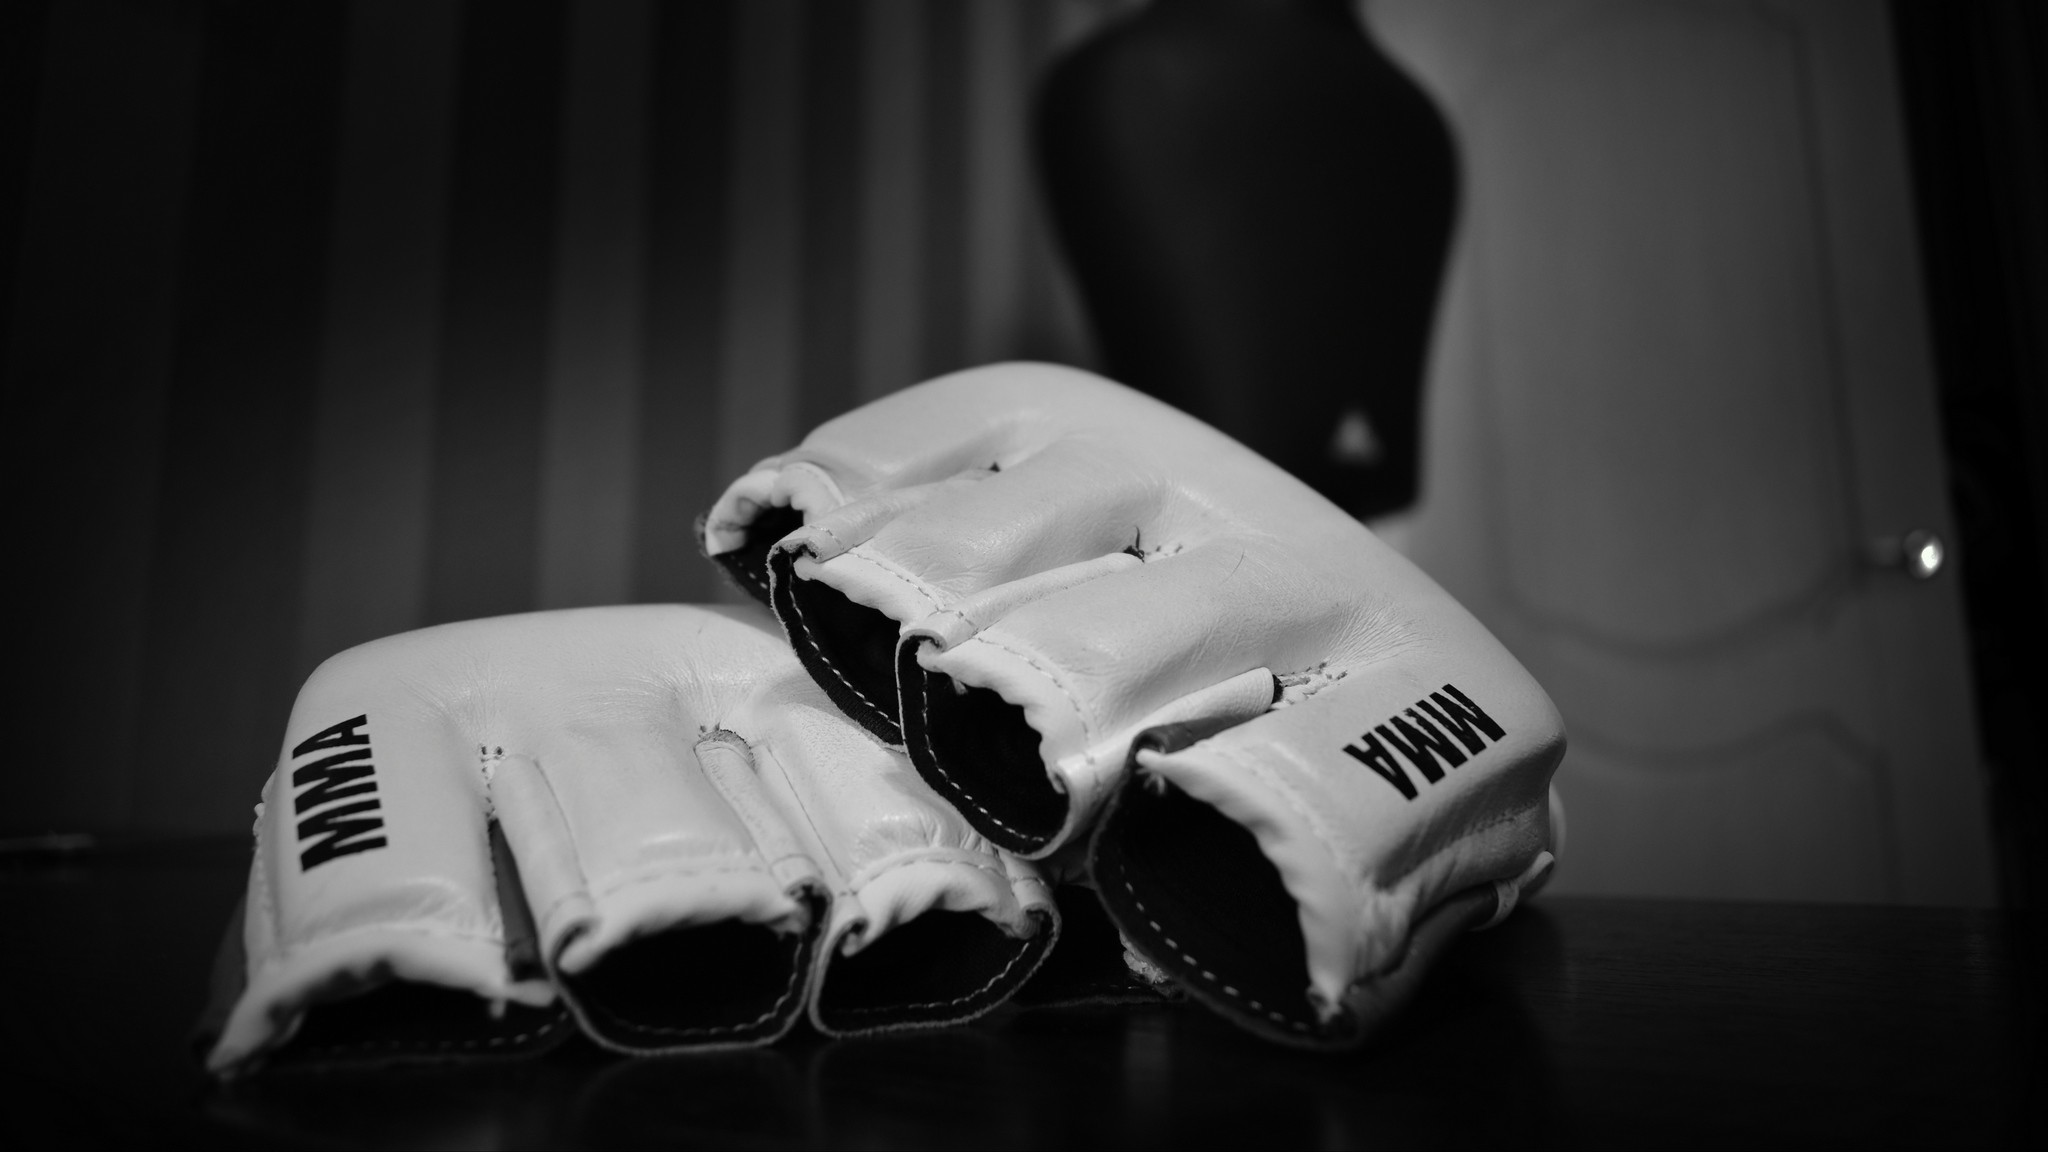 2048x1152  Wallpaper mixed martial arts, mma, wrestling, bw, gloves